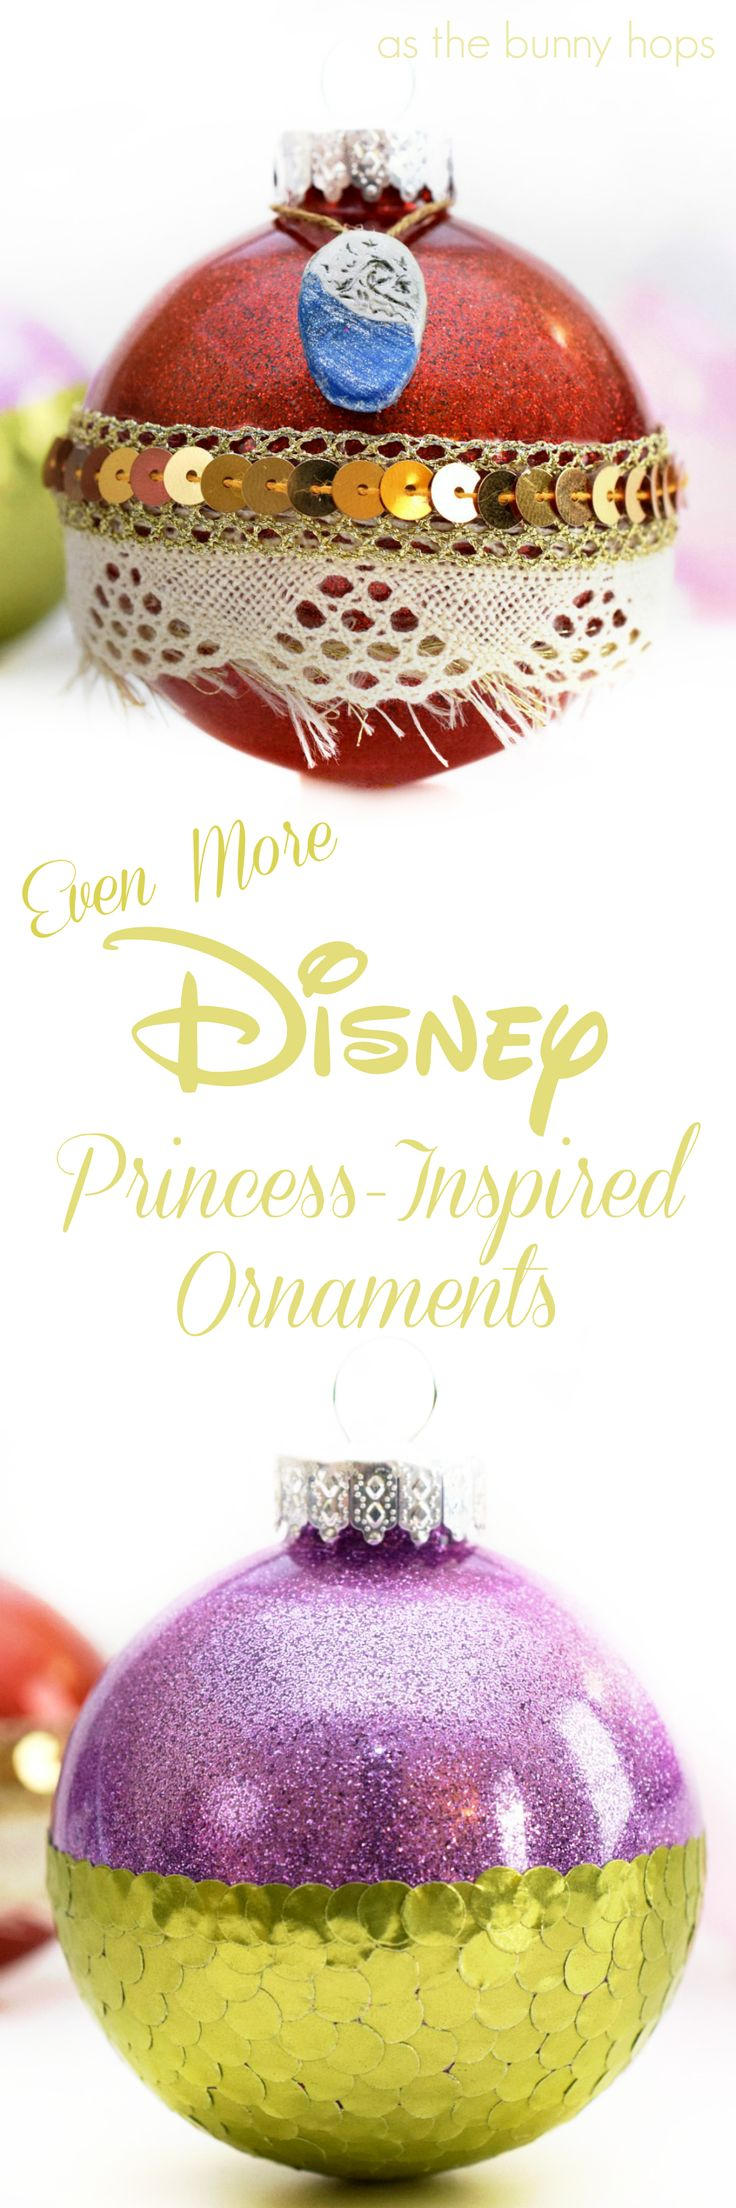 Craft up some Disney-inspired fun with some sparkly princess ornaments! These DIY Christmas ornaments include Moana, Ariel and Sleeping Beauty!